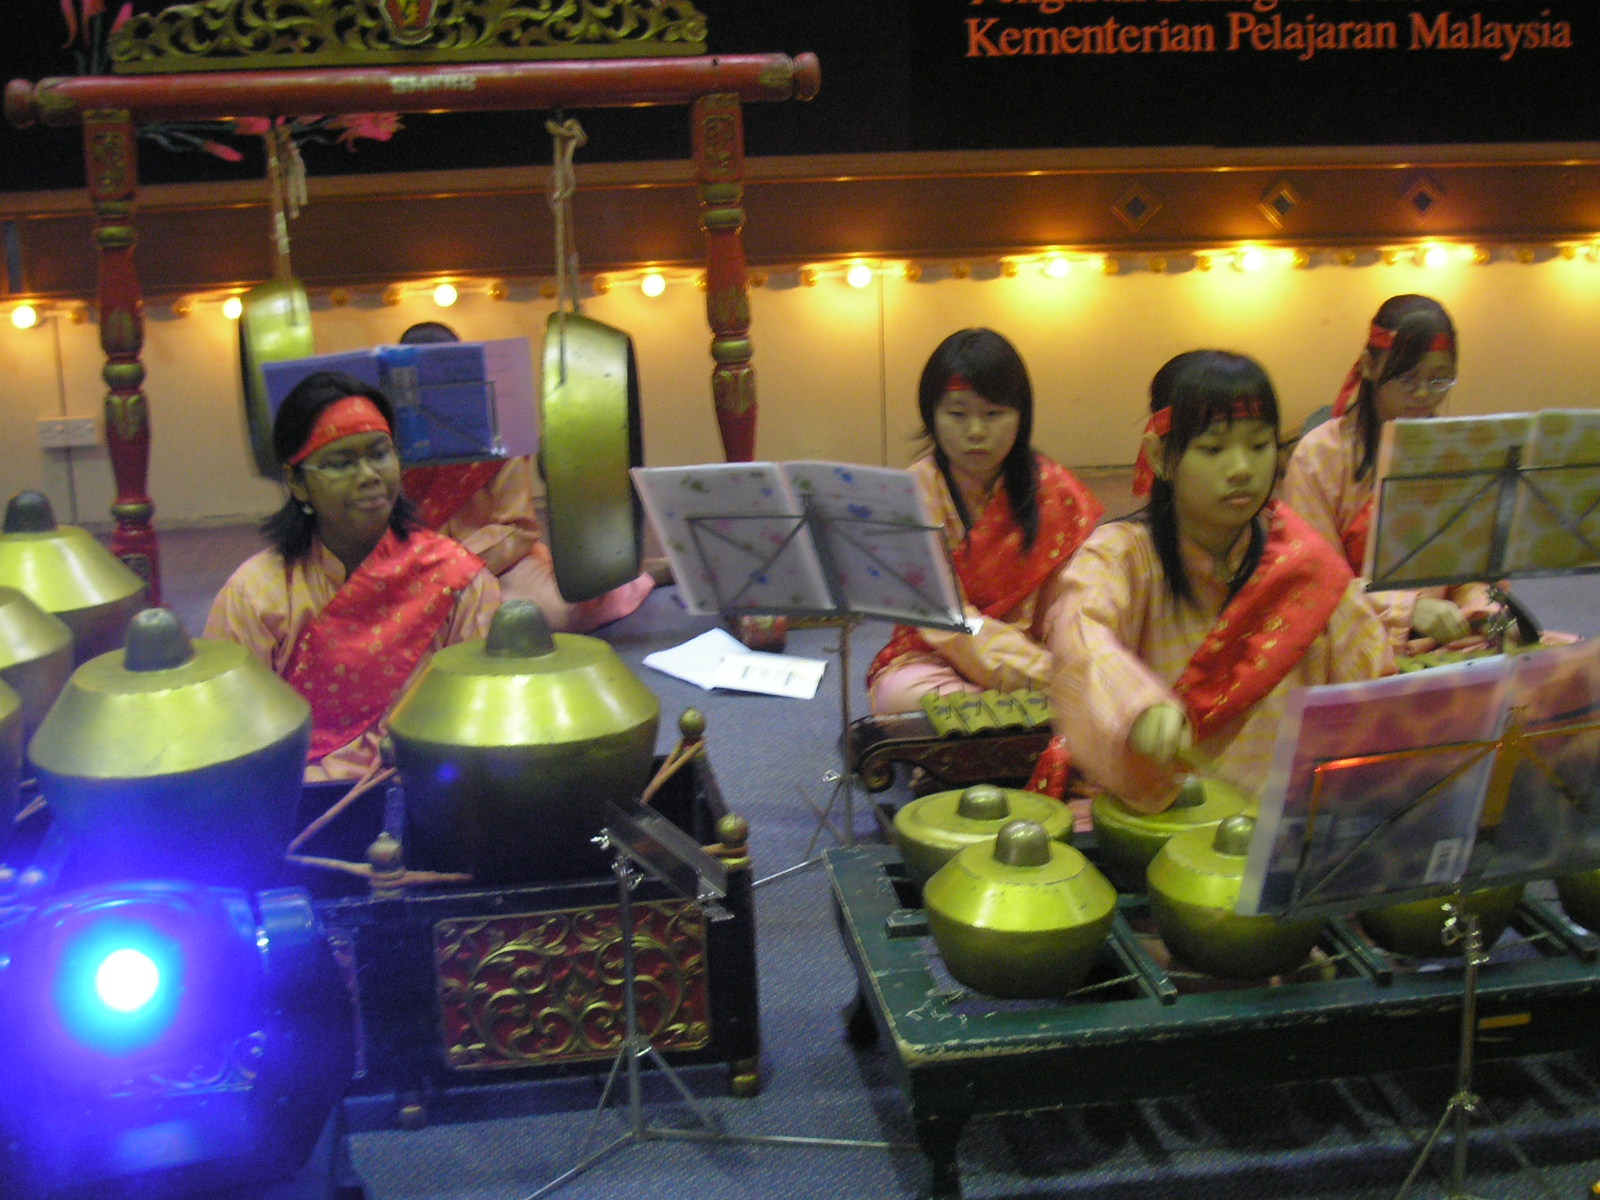 the history of caklempong View jiao wei chong's profile on linkedin experienced quality assurance with a demonstrated history of working in the food caklempong and gamelan.